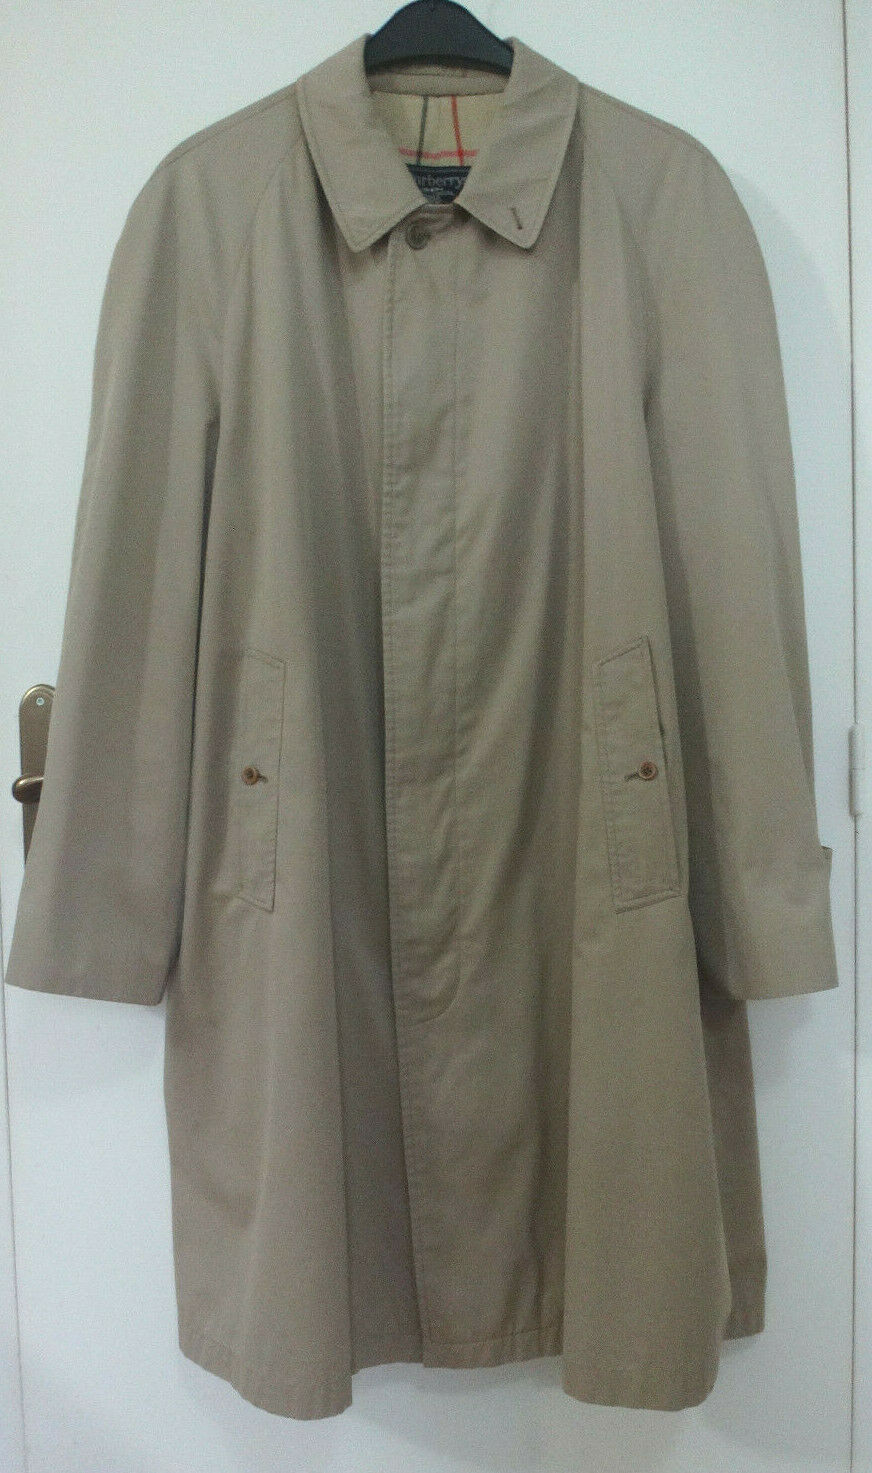 Burberry prorsum xl vintage veste manteau trench leger beige classic authentic